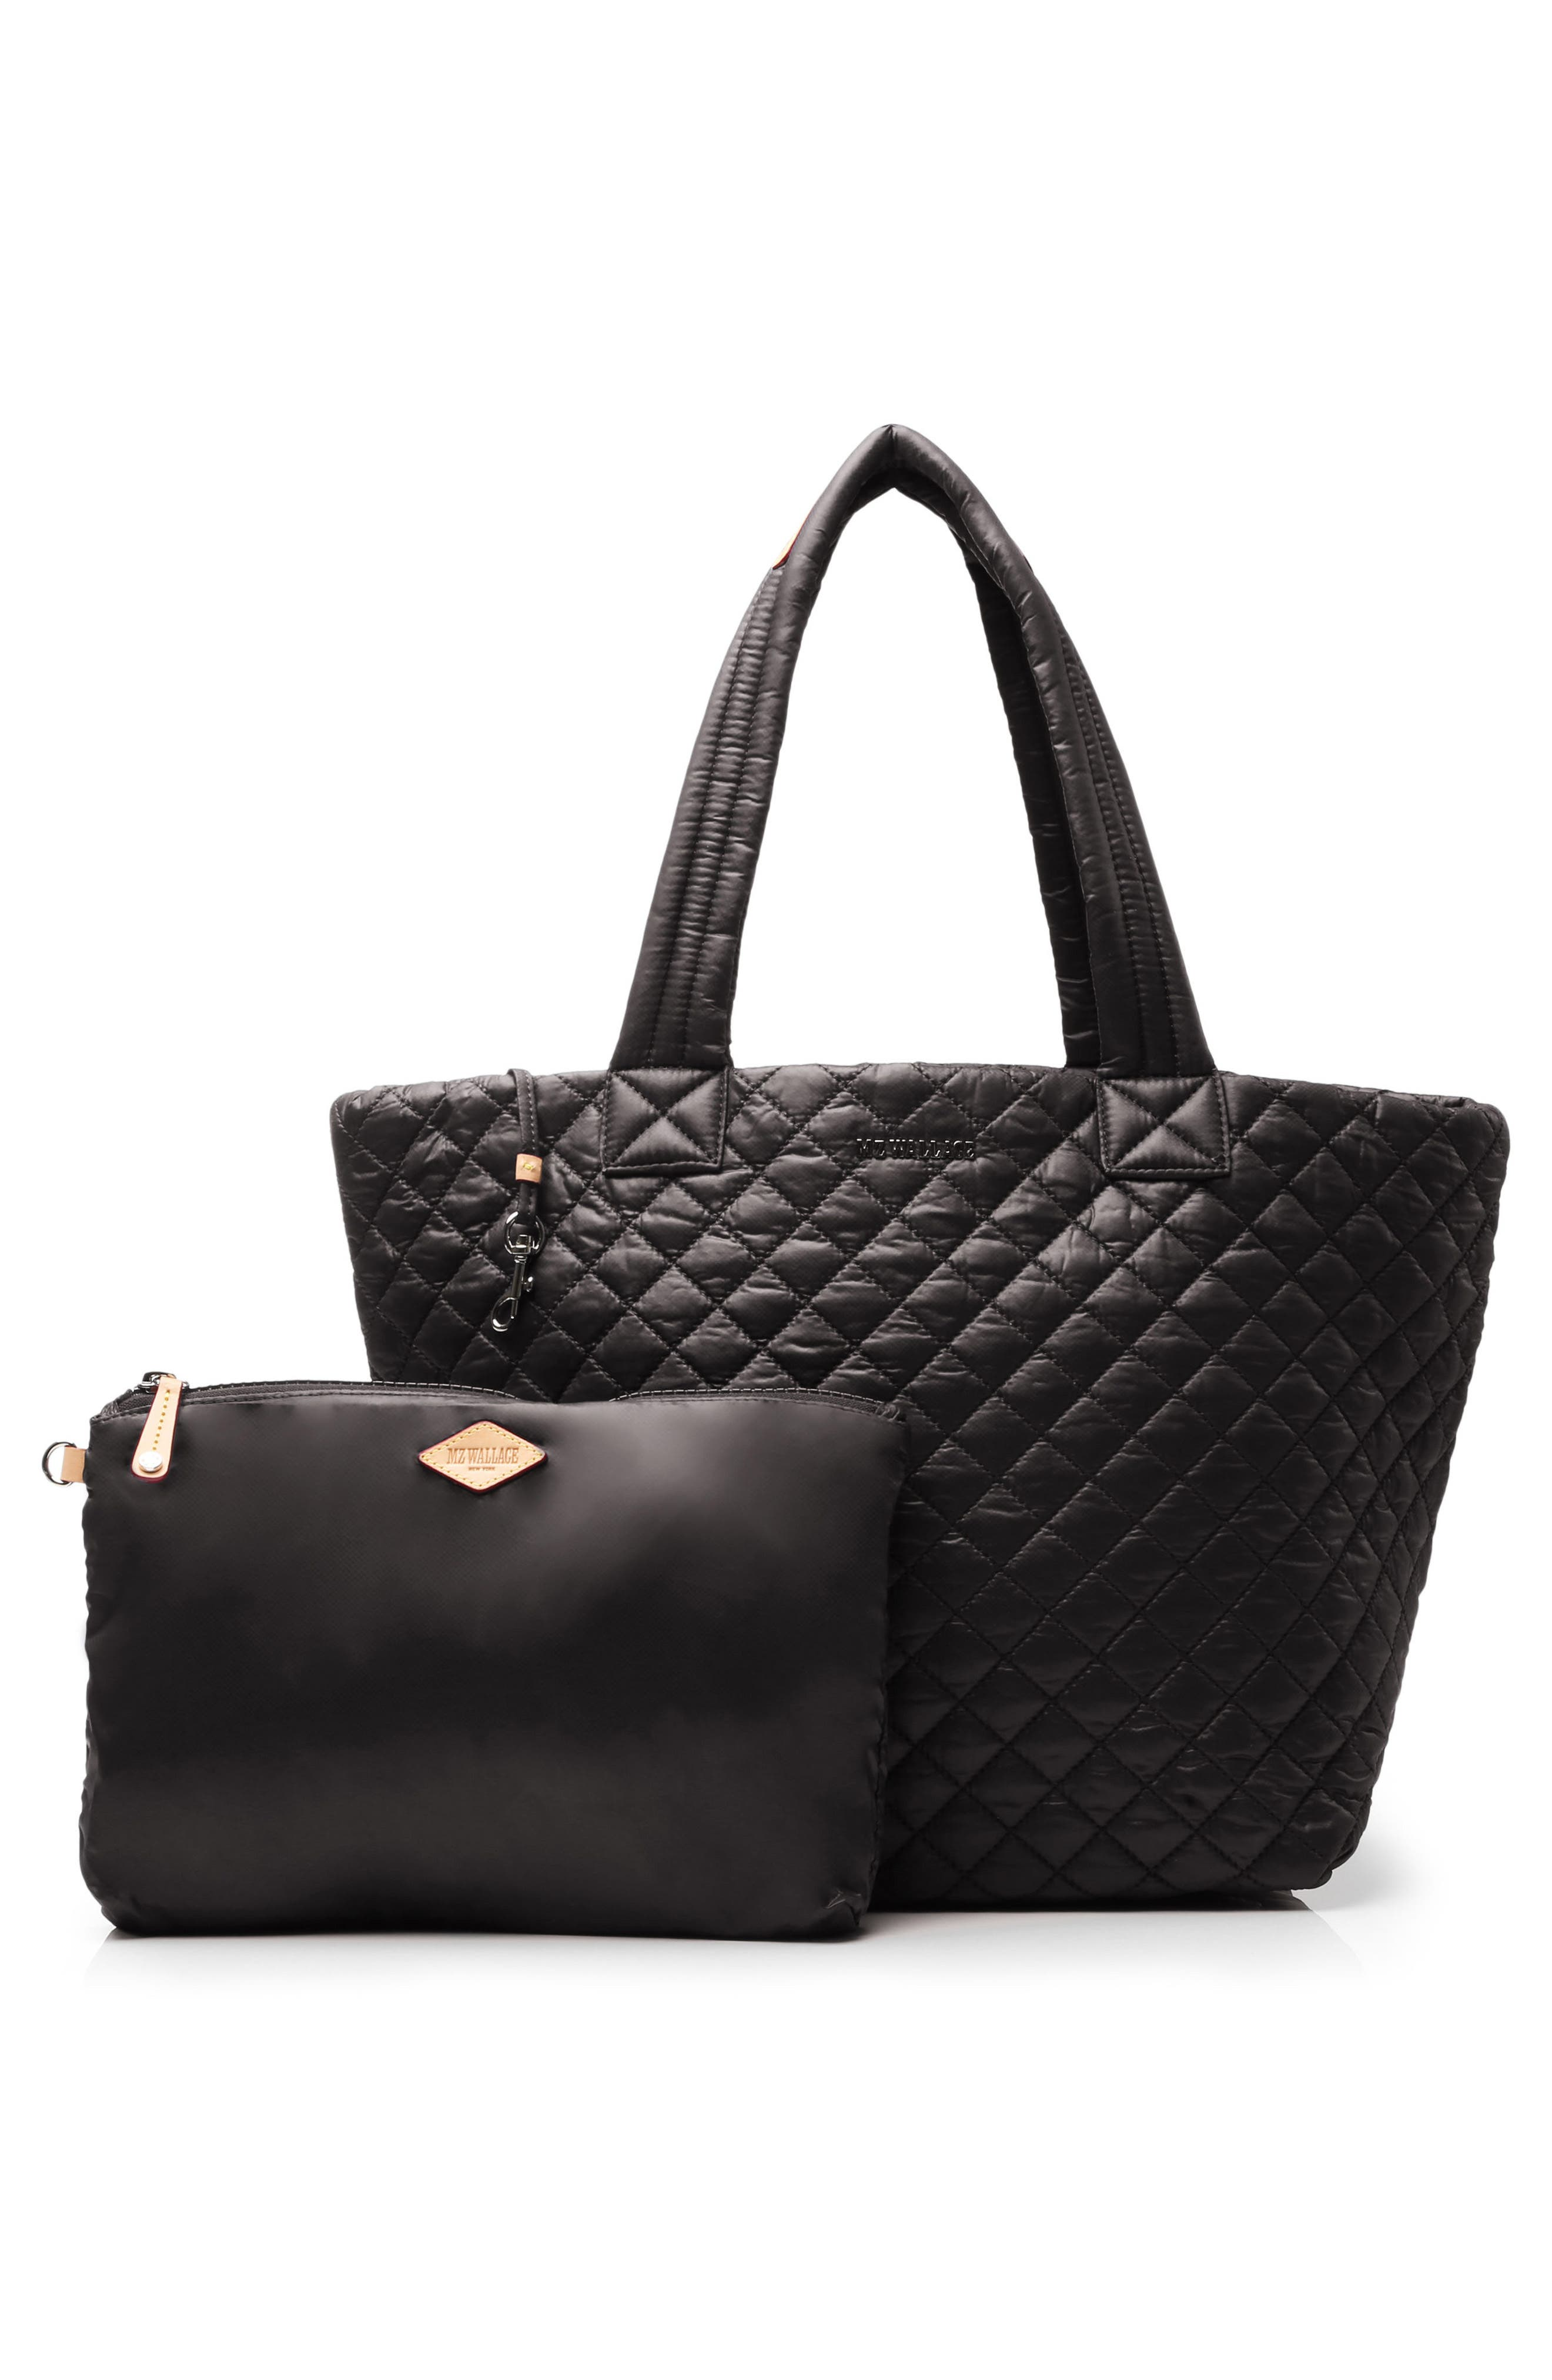 Medium Metro Tote,                             Alternate thumbnail 3, color,                             BLACK